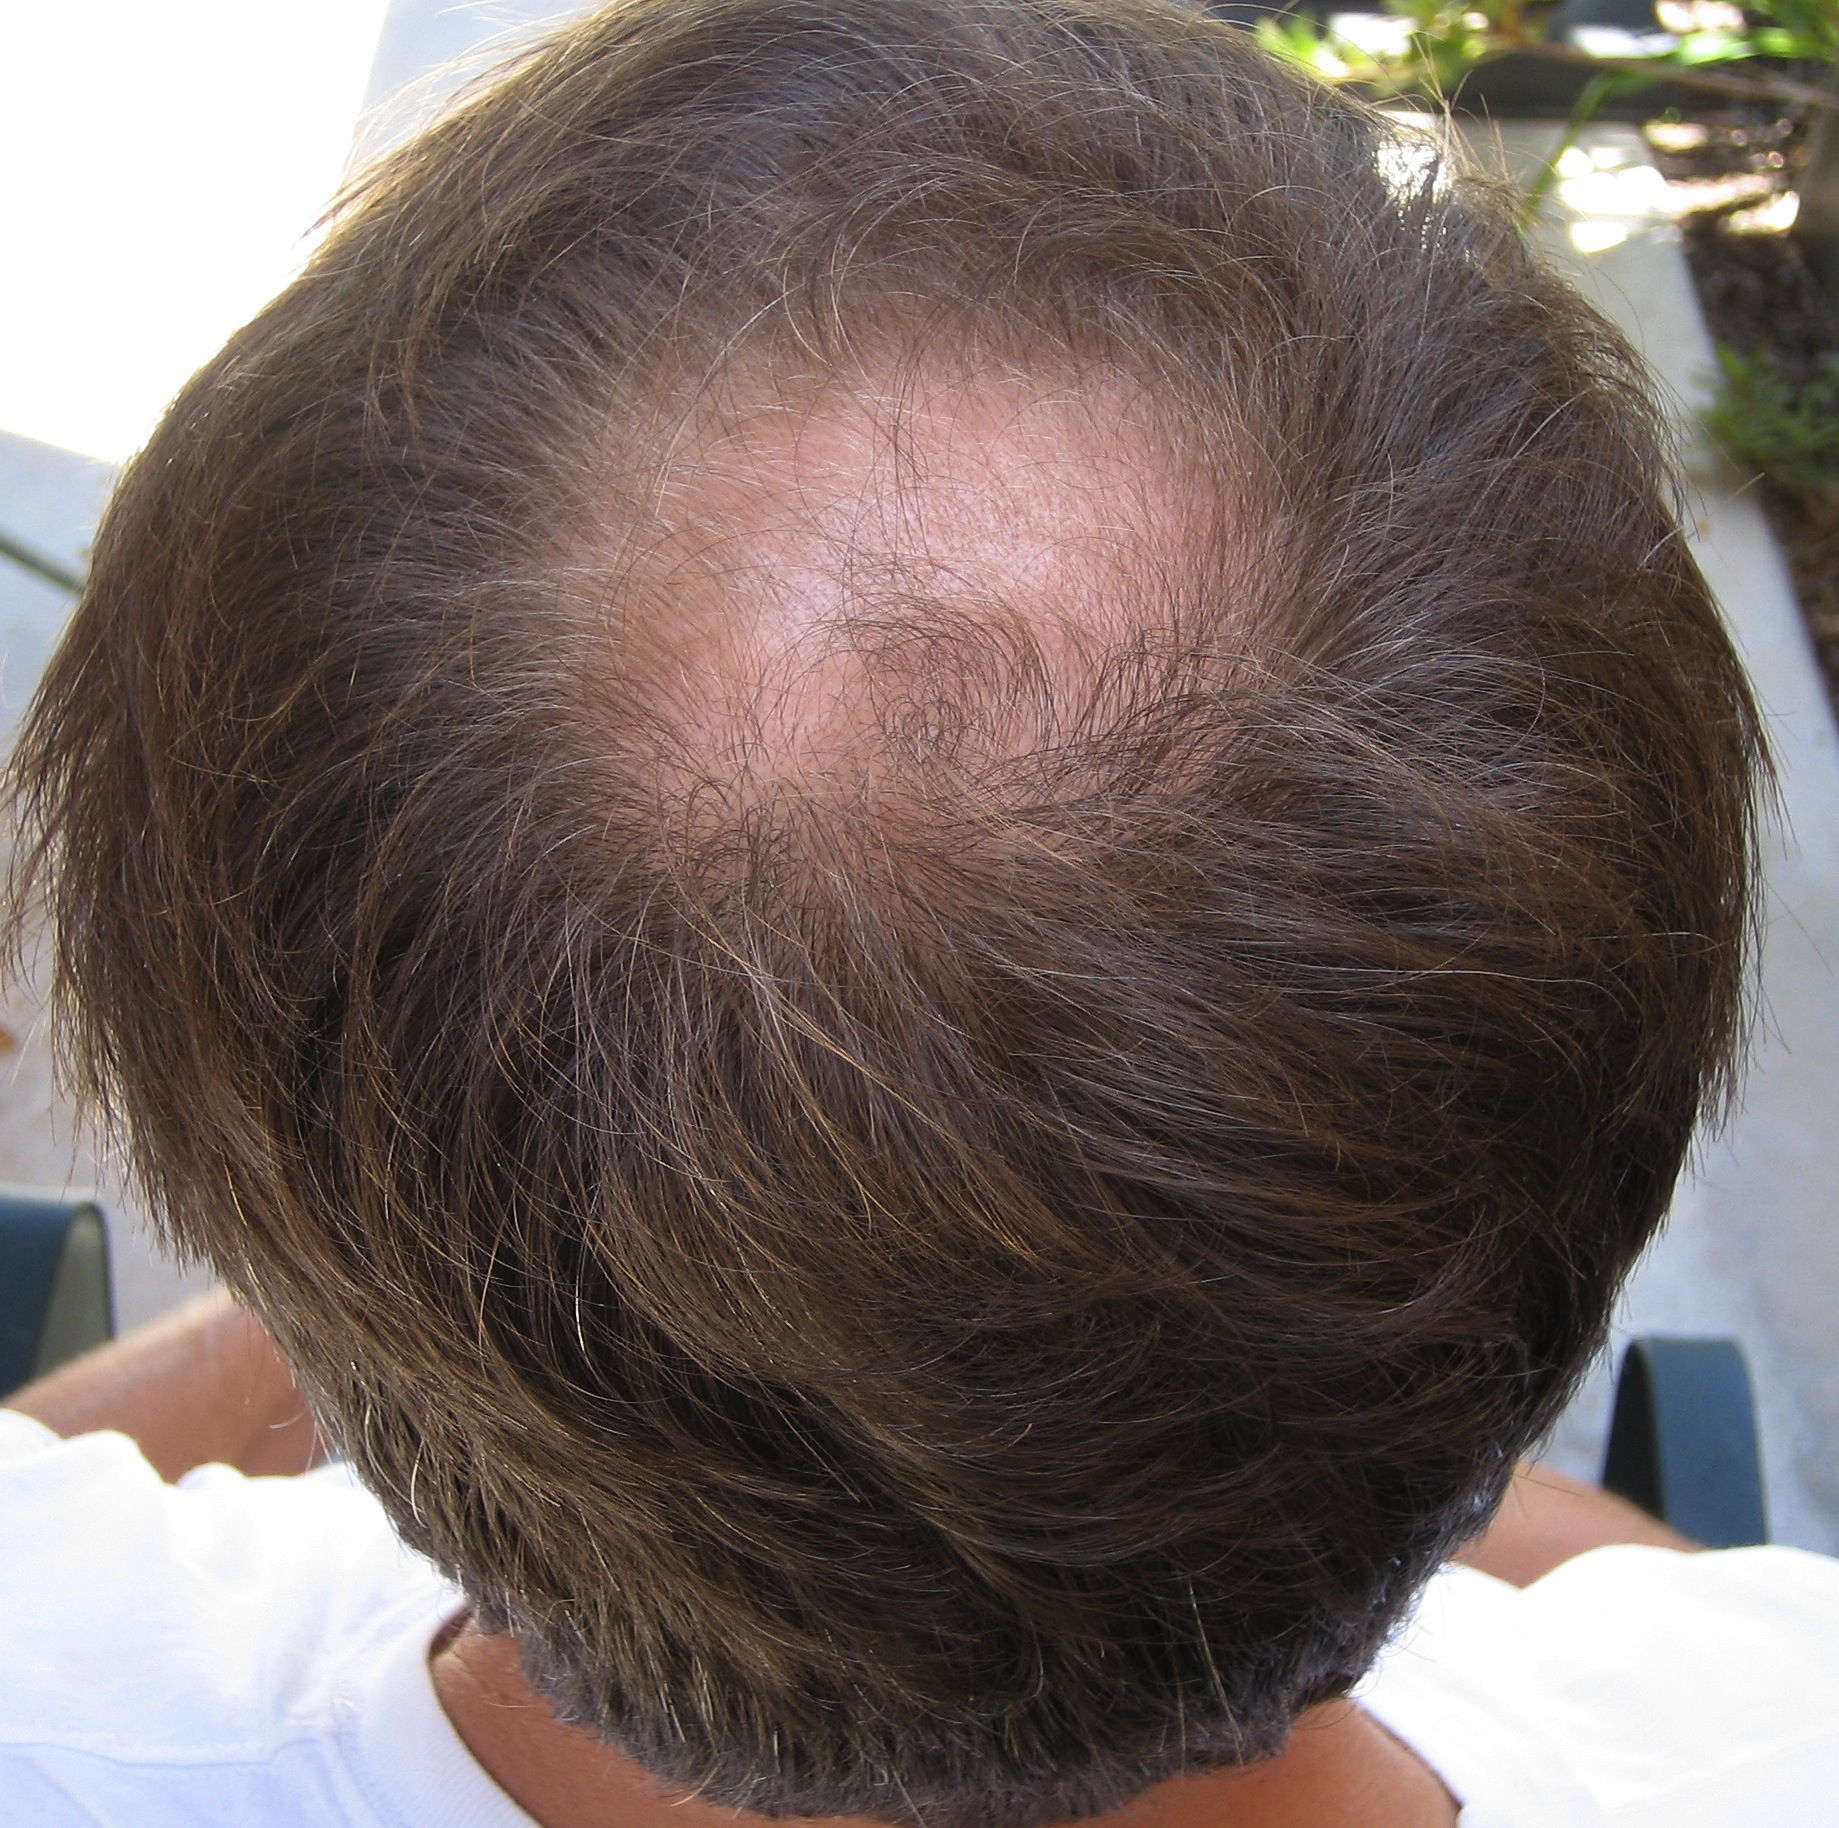 azelaic acid hair loss from steroids